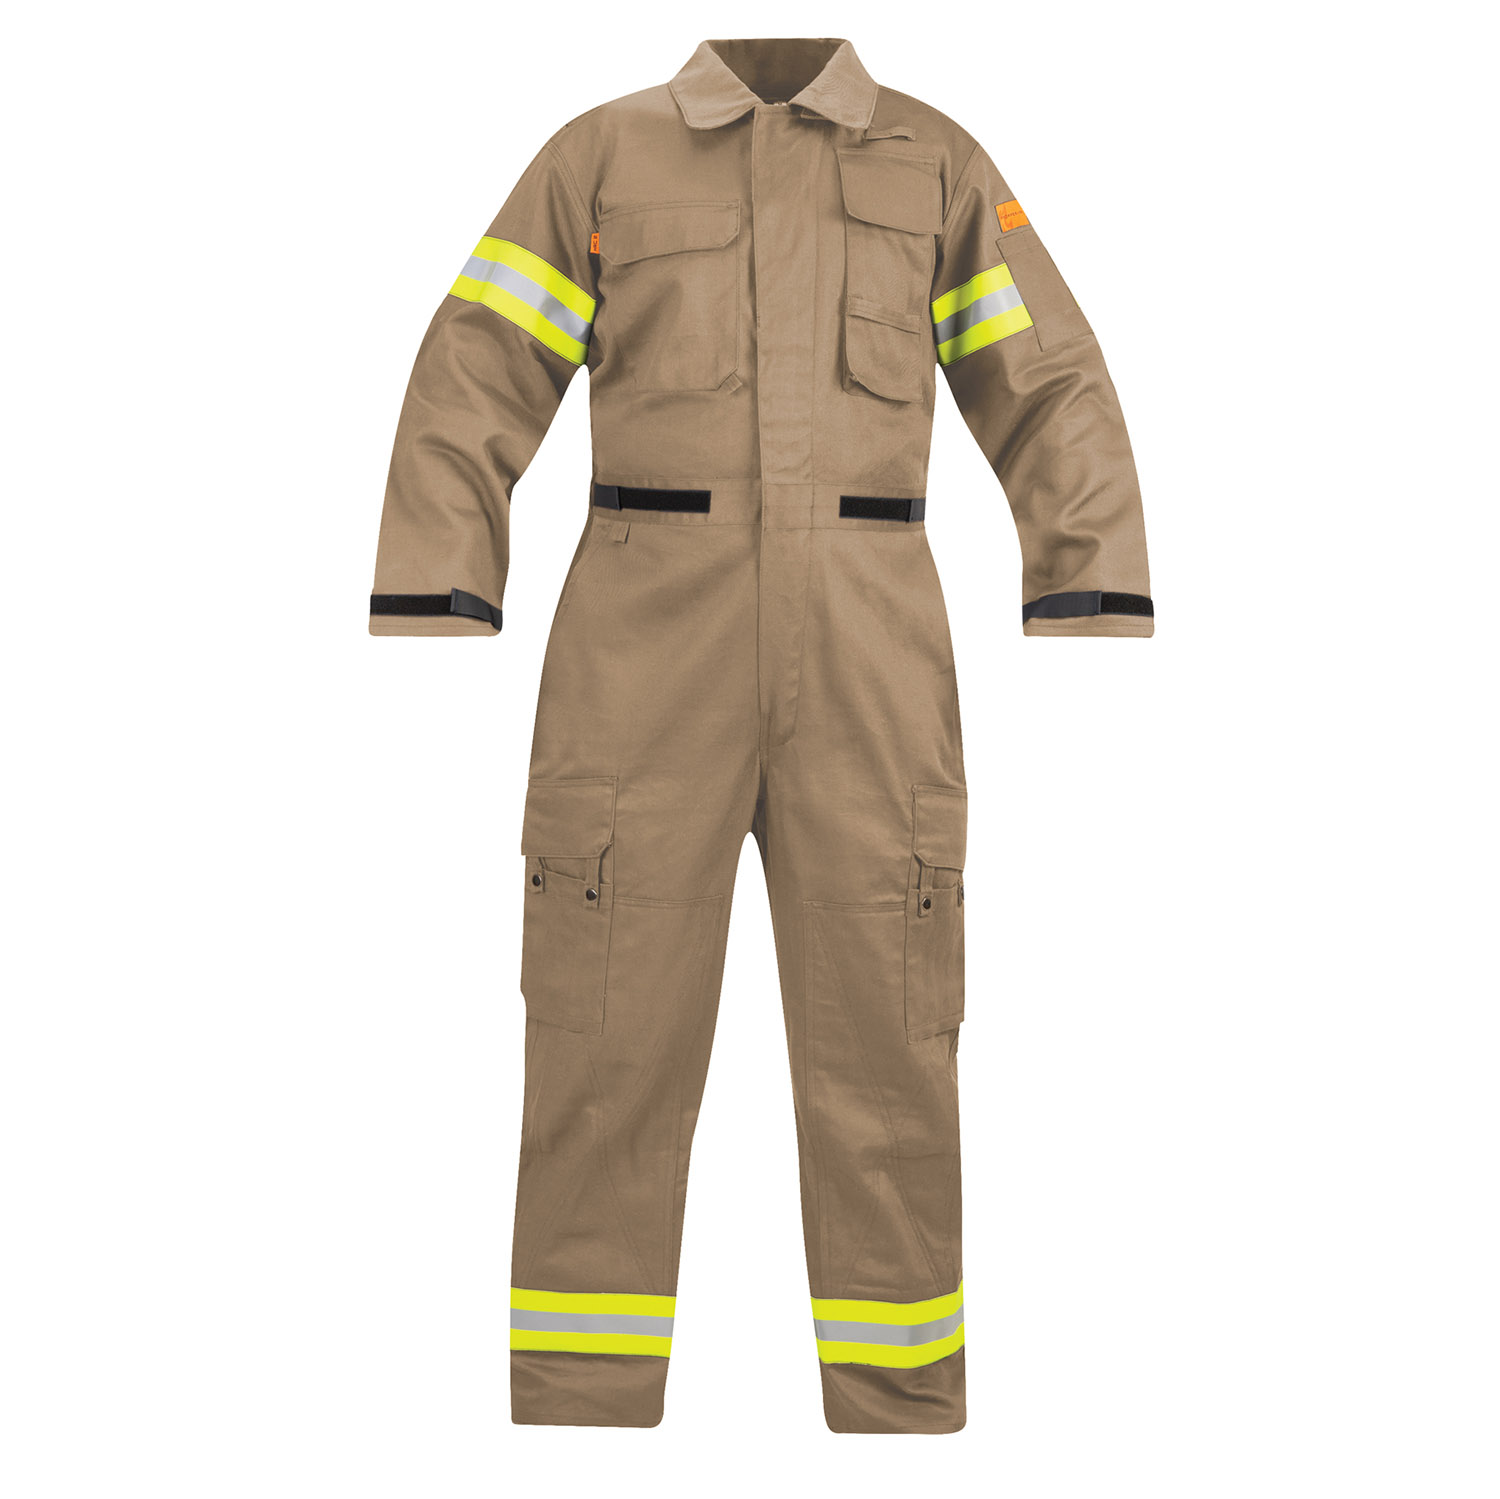 Propper Extrication Suit